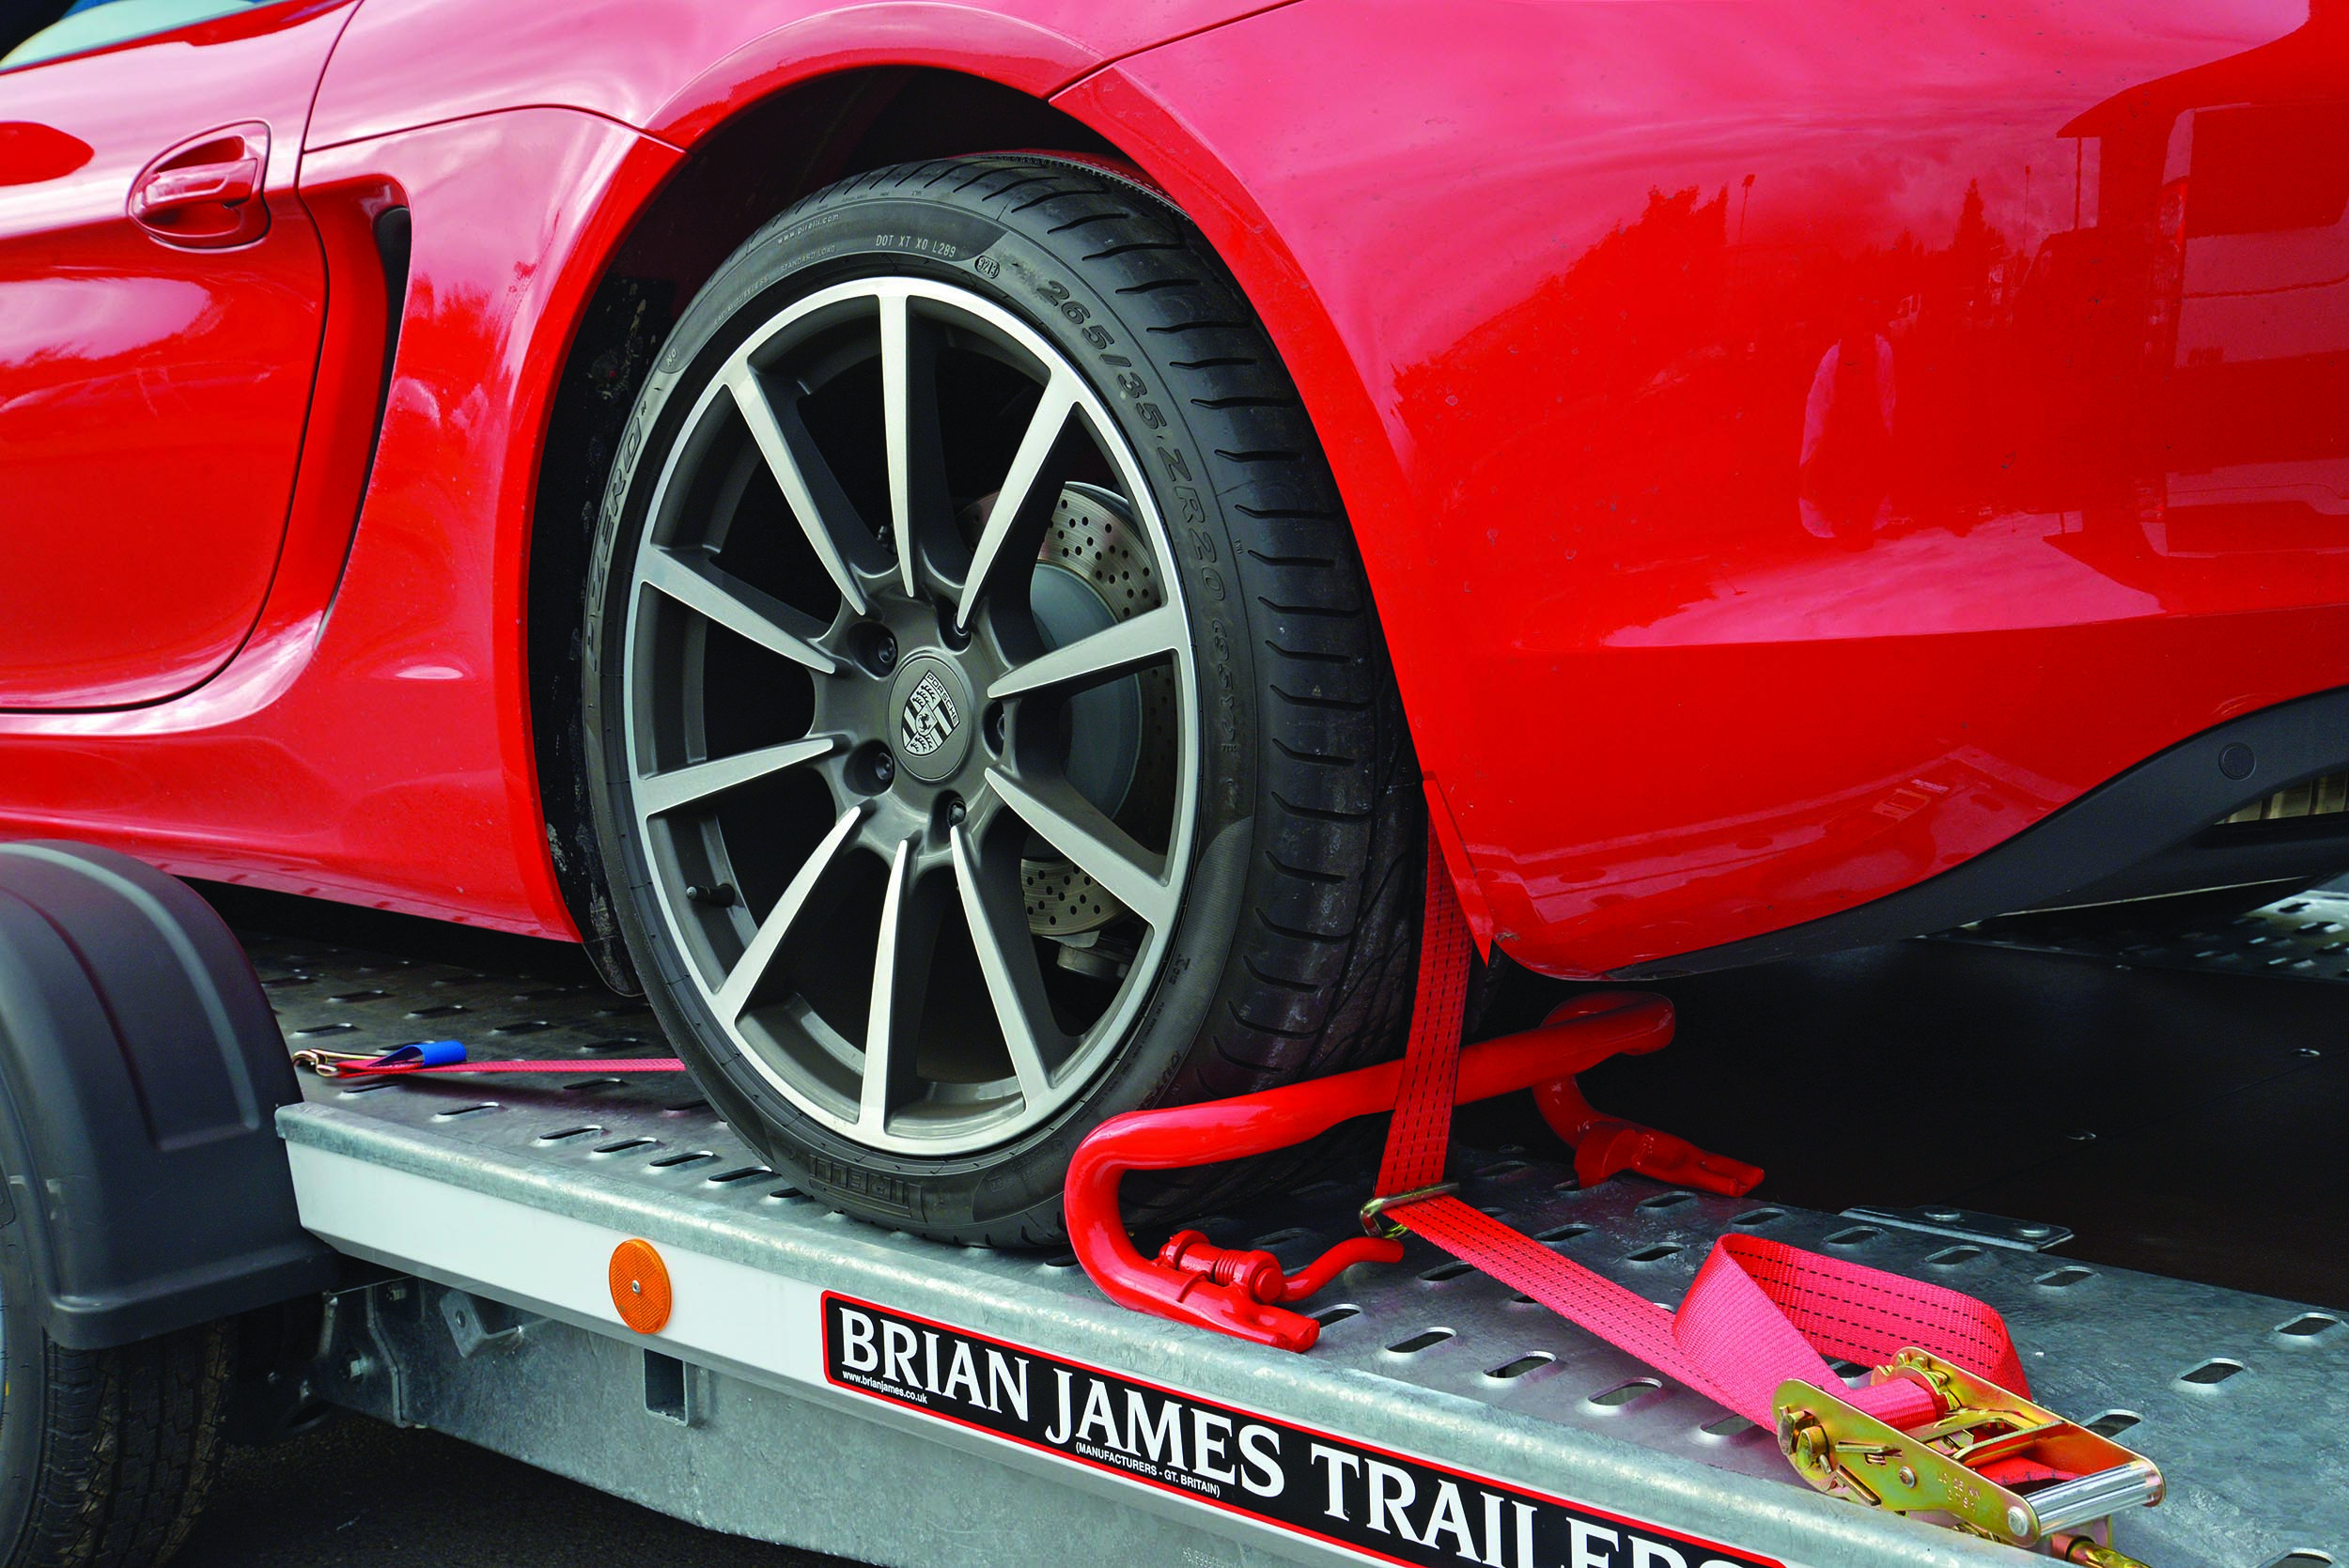 Fixed sports car to a Brian James Trailer